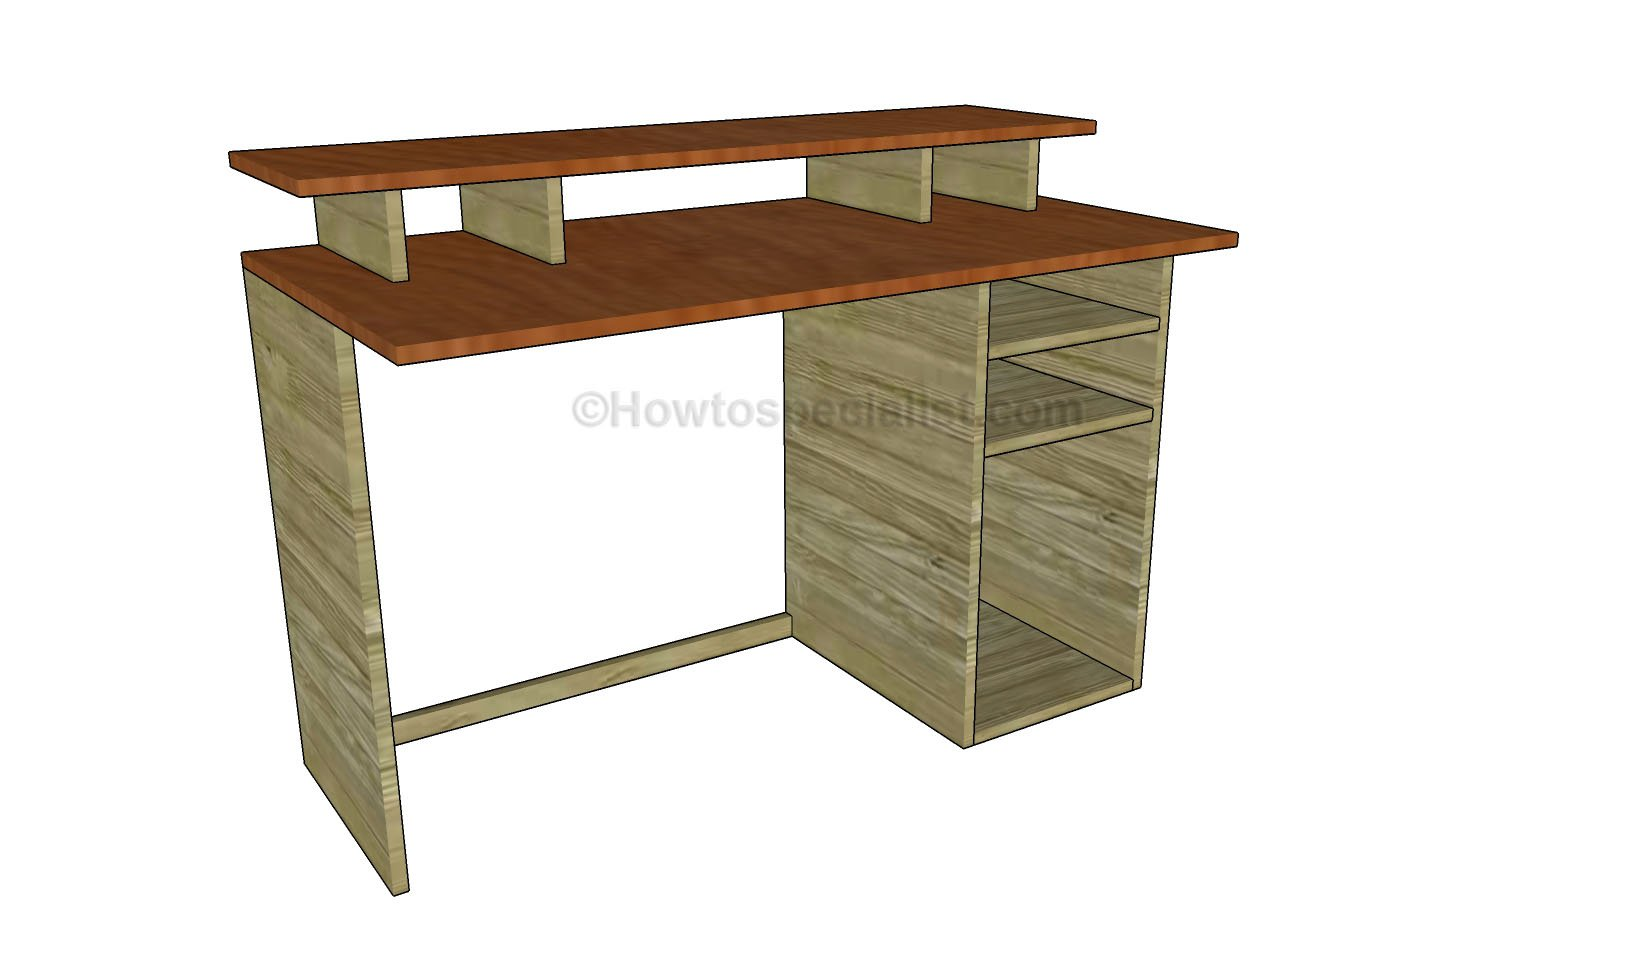 Diy Wall Mounted Desk Plans House Design And Decorating